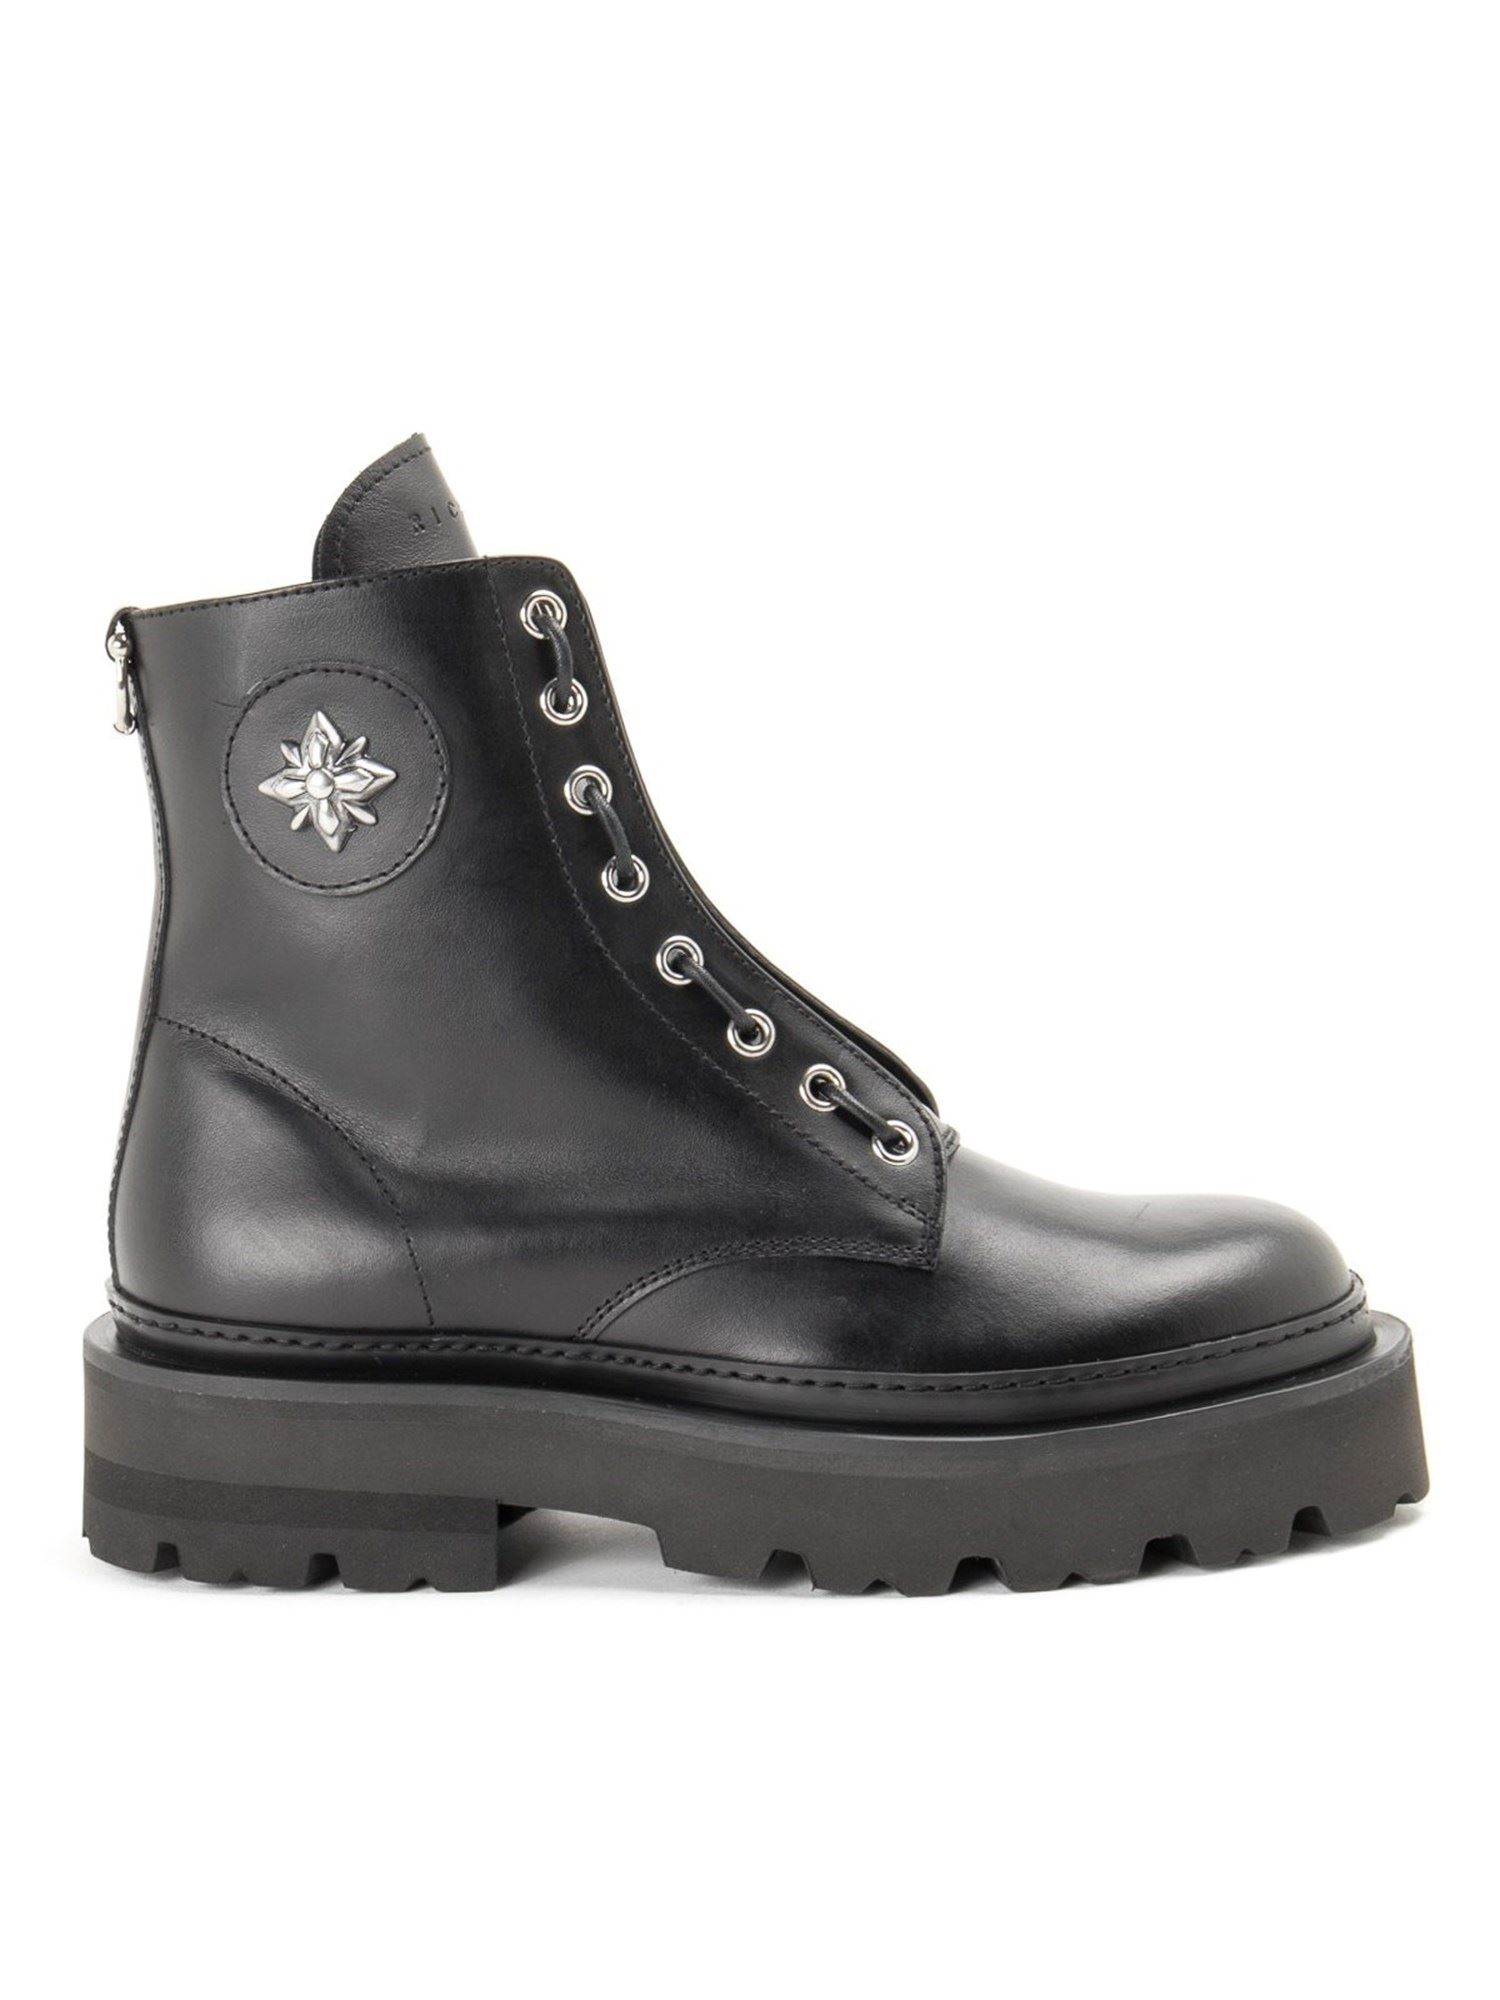 John Richmond Boots BLACK LEATHER ANKLE BOOTS